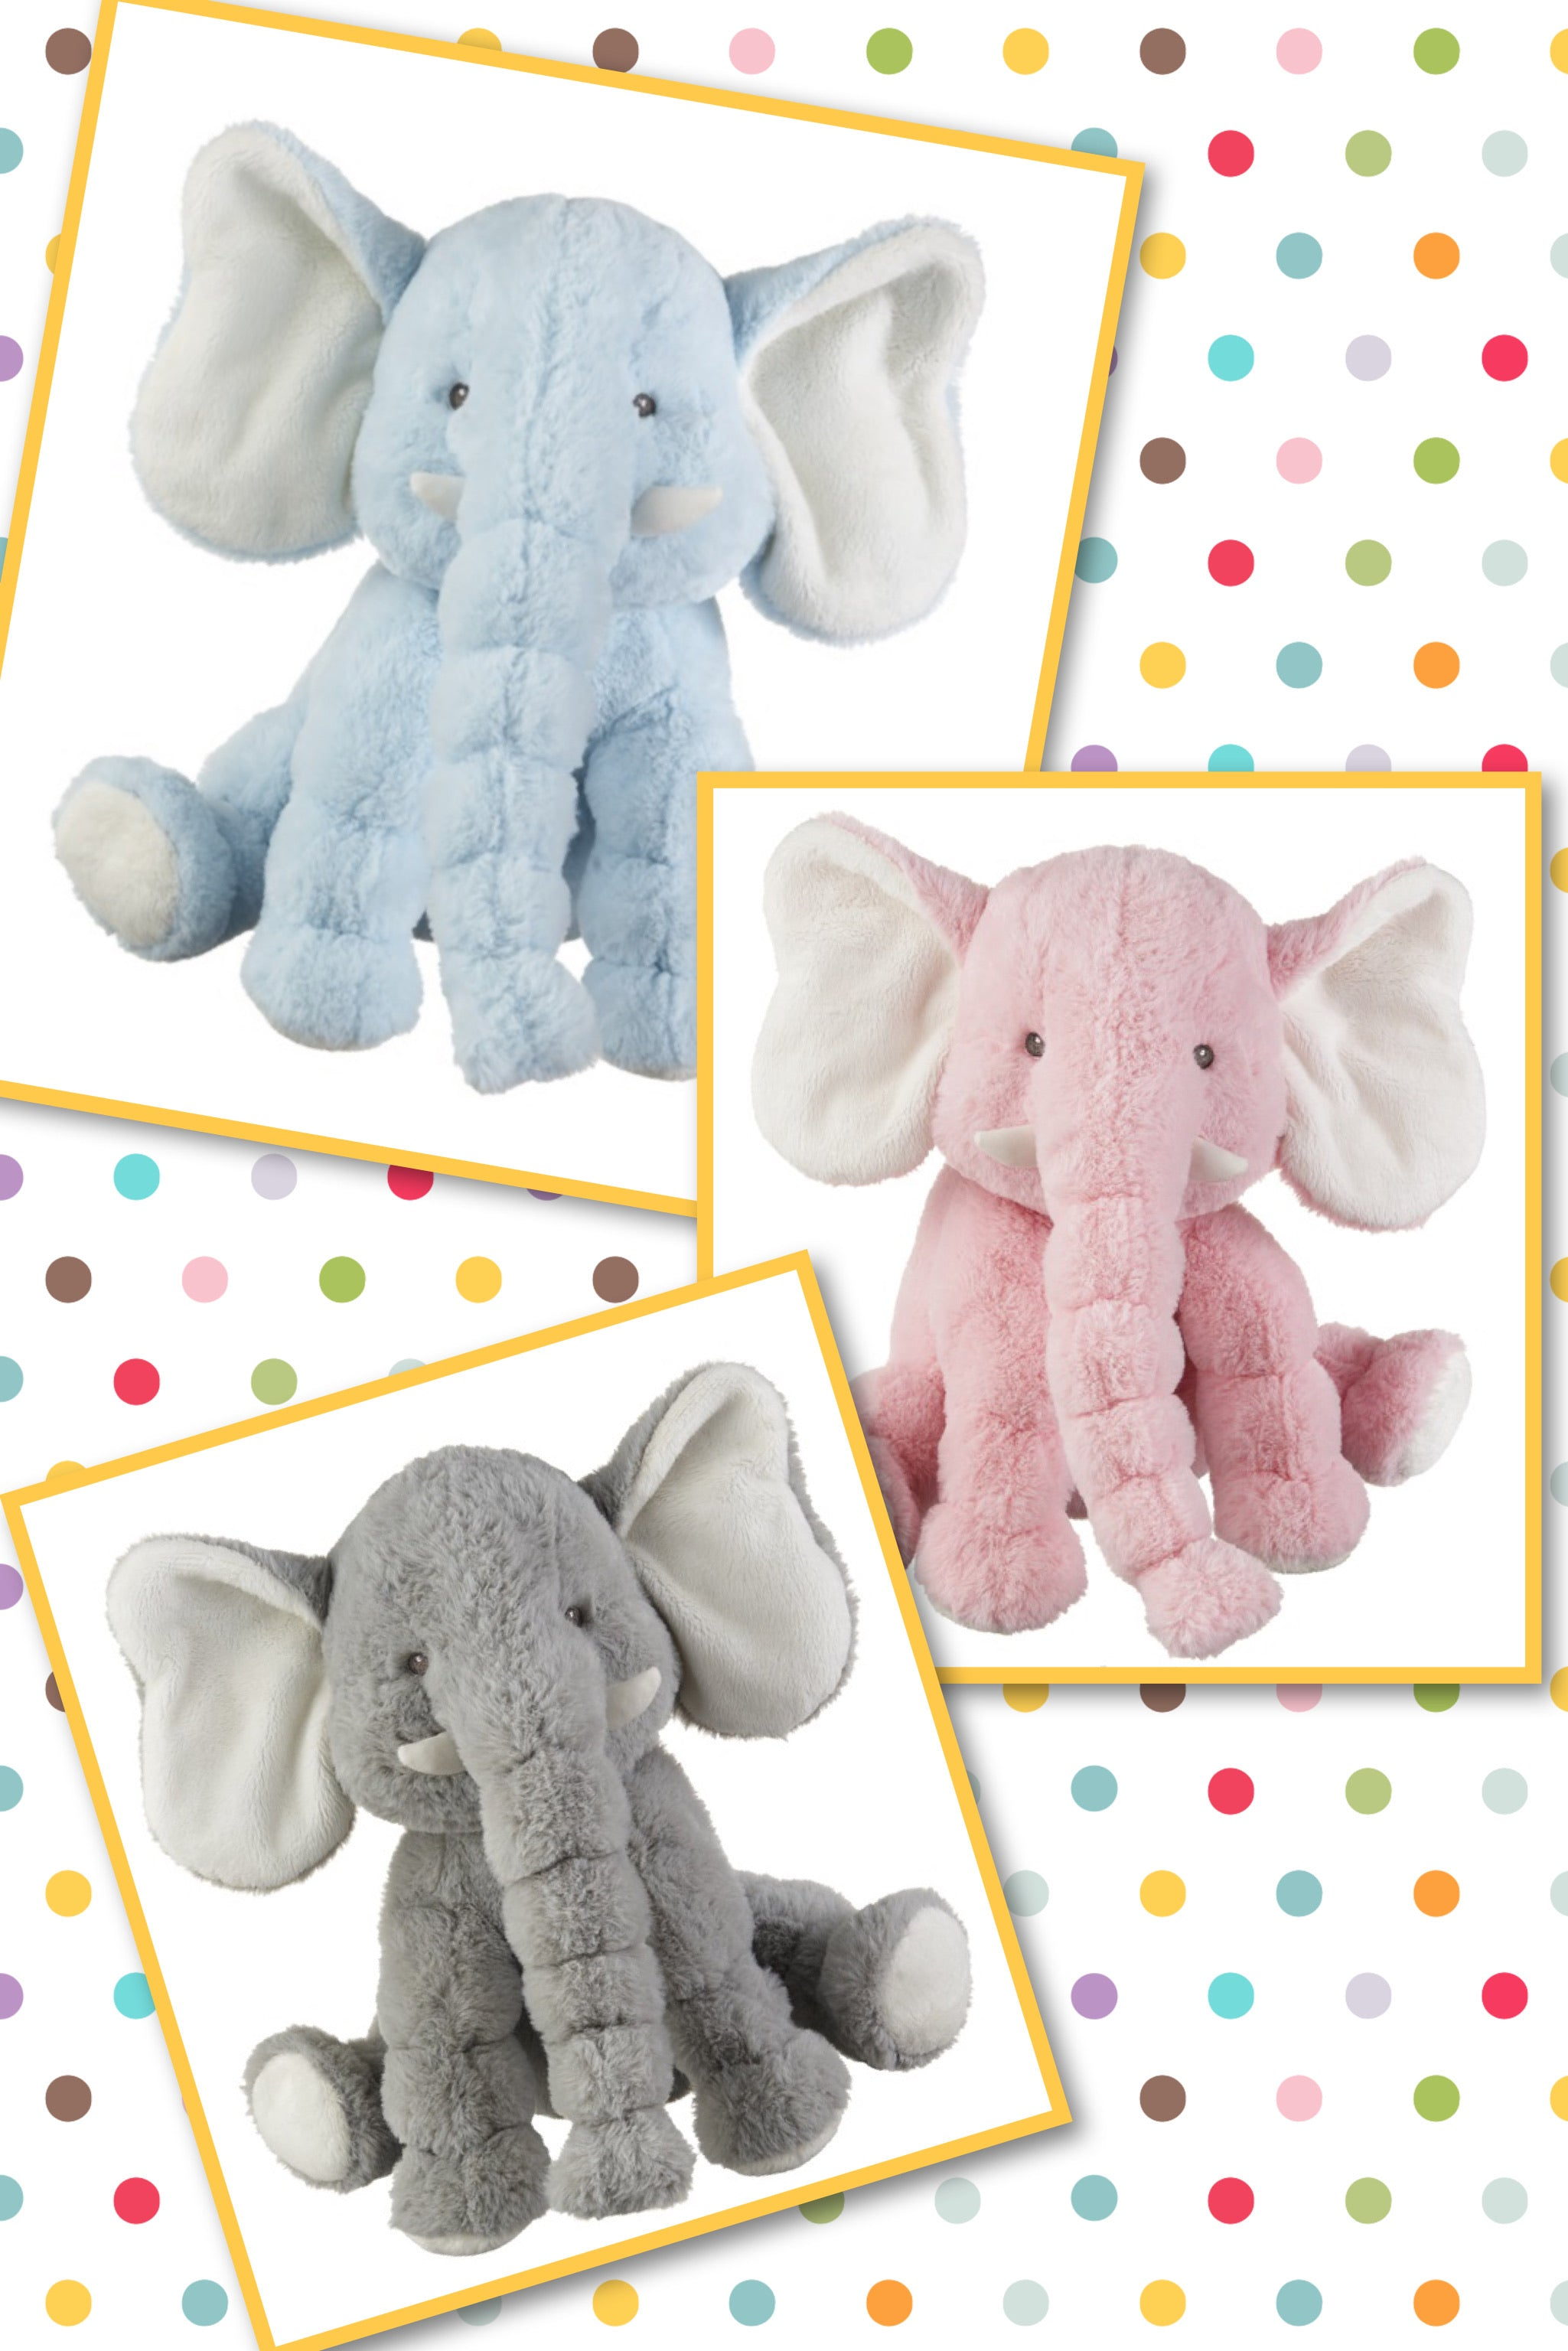 Jellybean Elephants